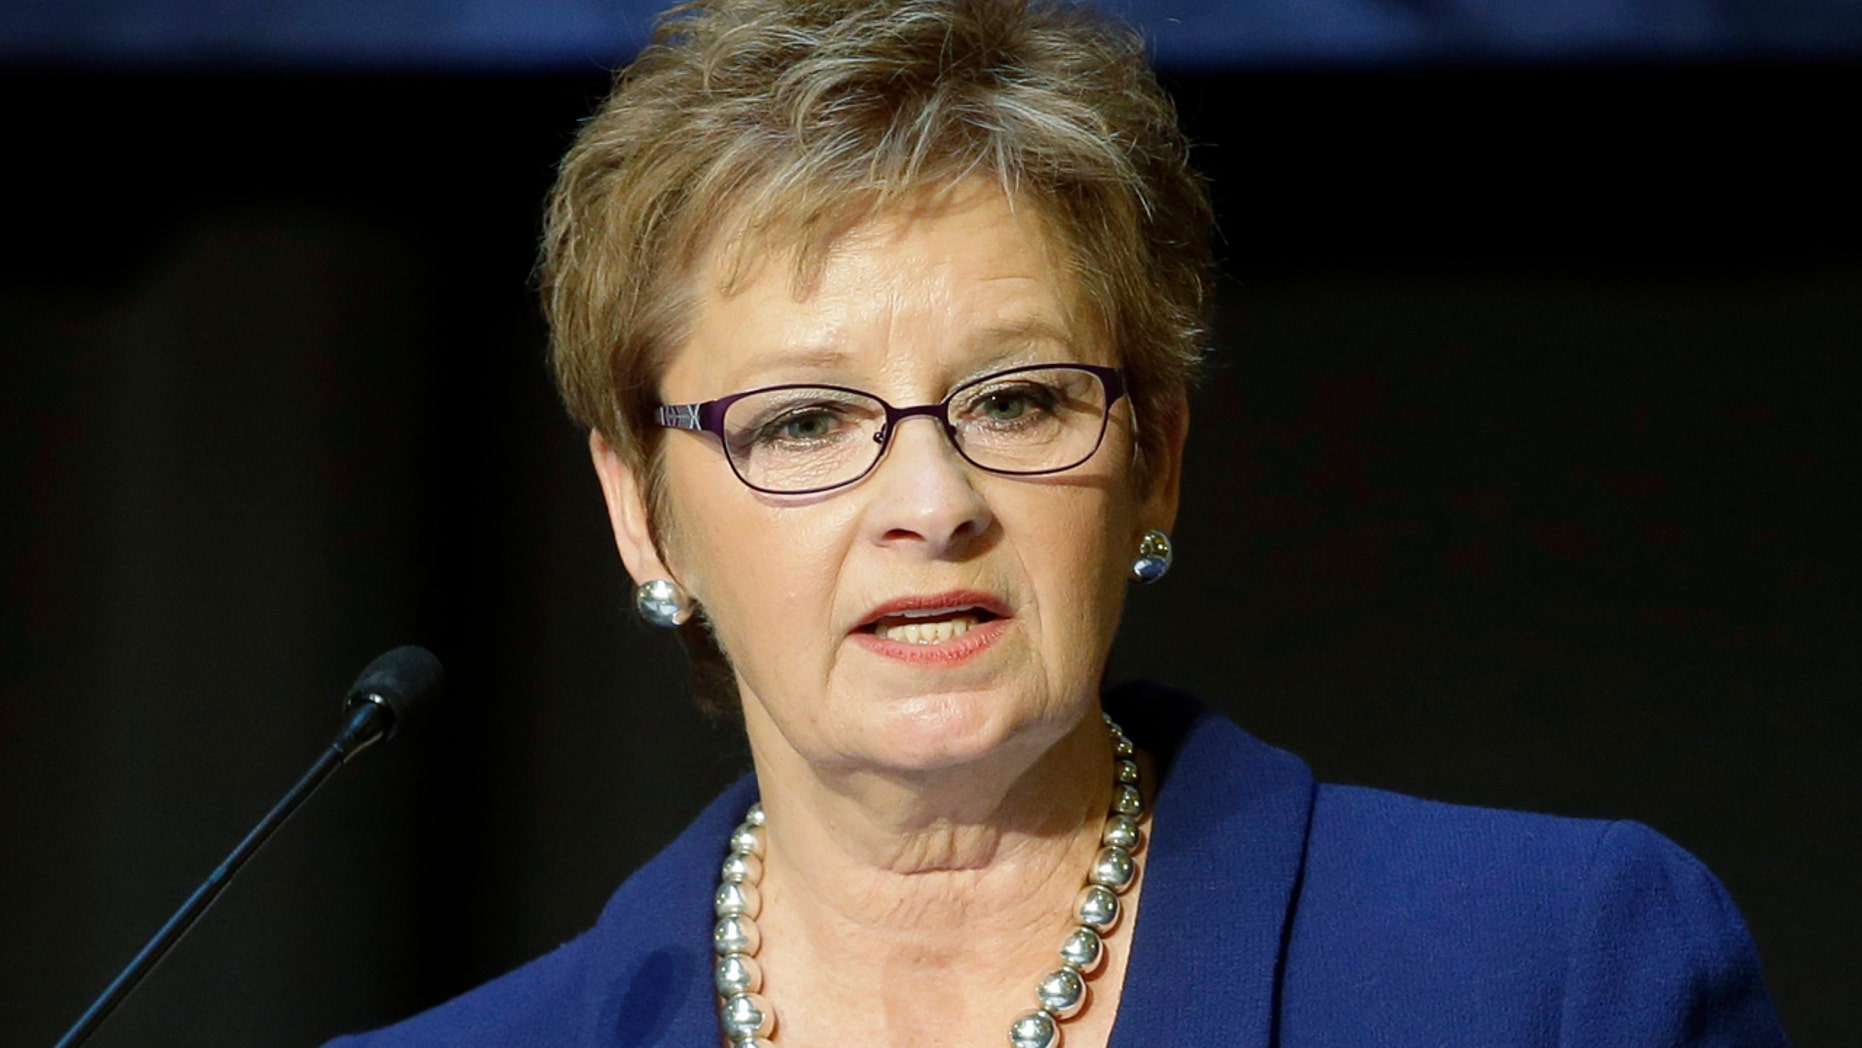 In this Jan. 7, 2015 file photo, Indiana Secretary of State Connie Lawson speak in Indianapolis.